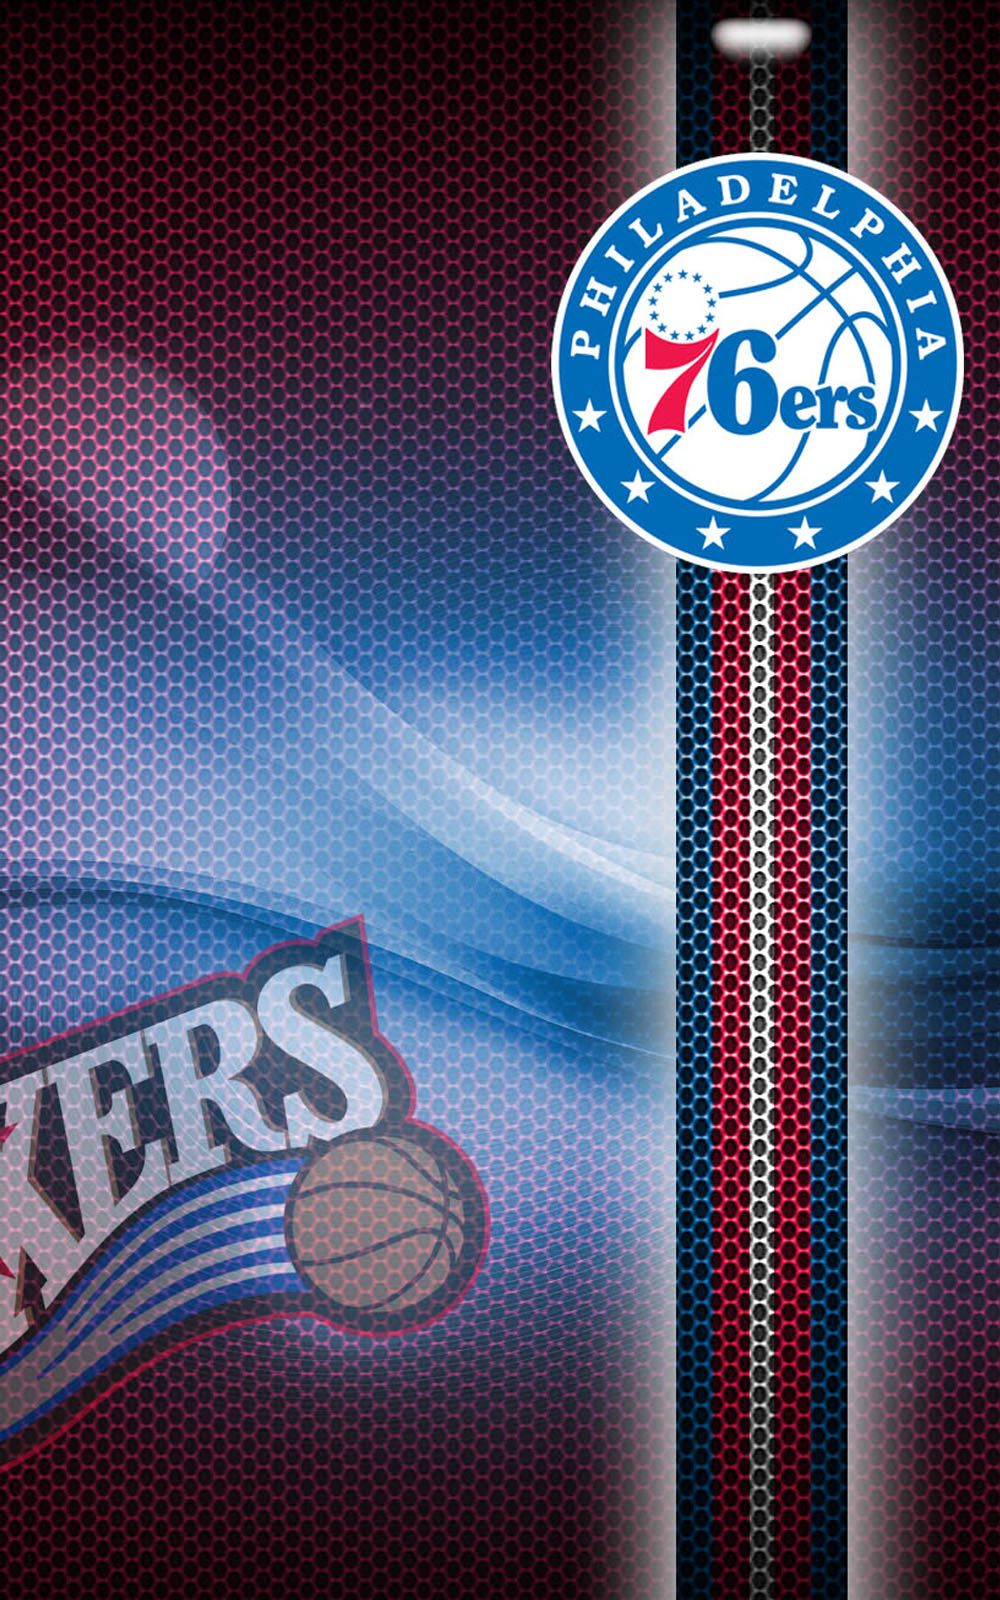 Home Screen Wallpaper With Quotes The Philadelphia 76ers Download Free Hd Mobile Wallpapers